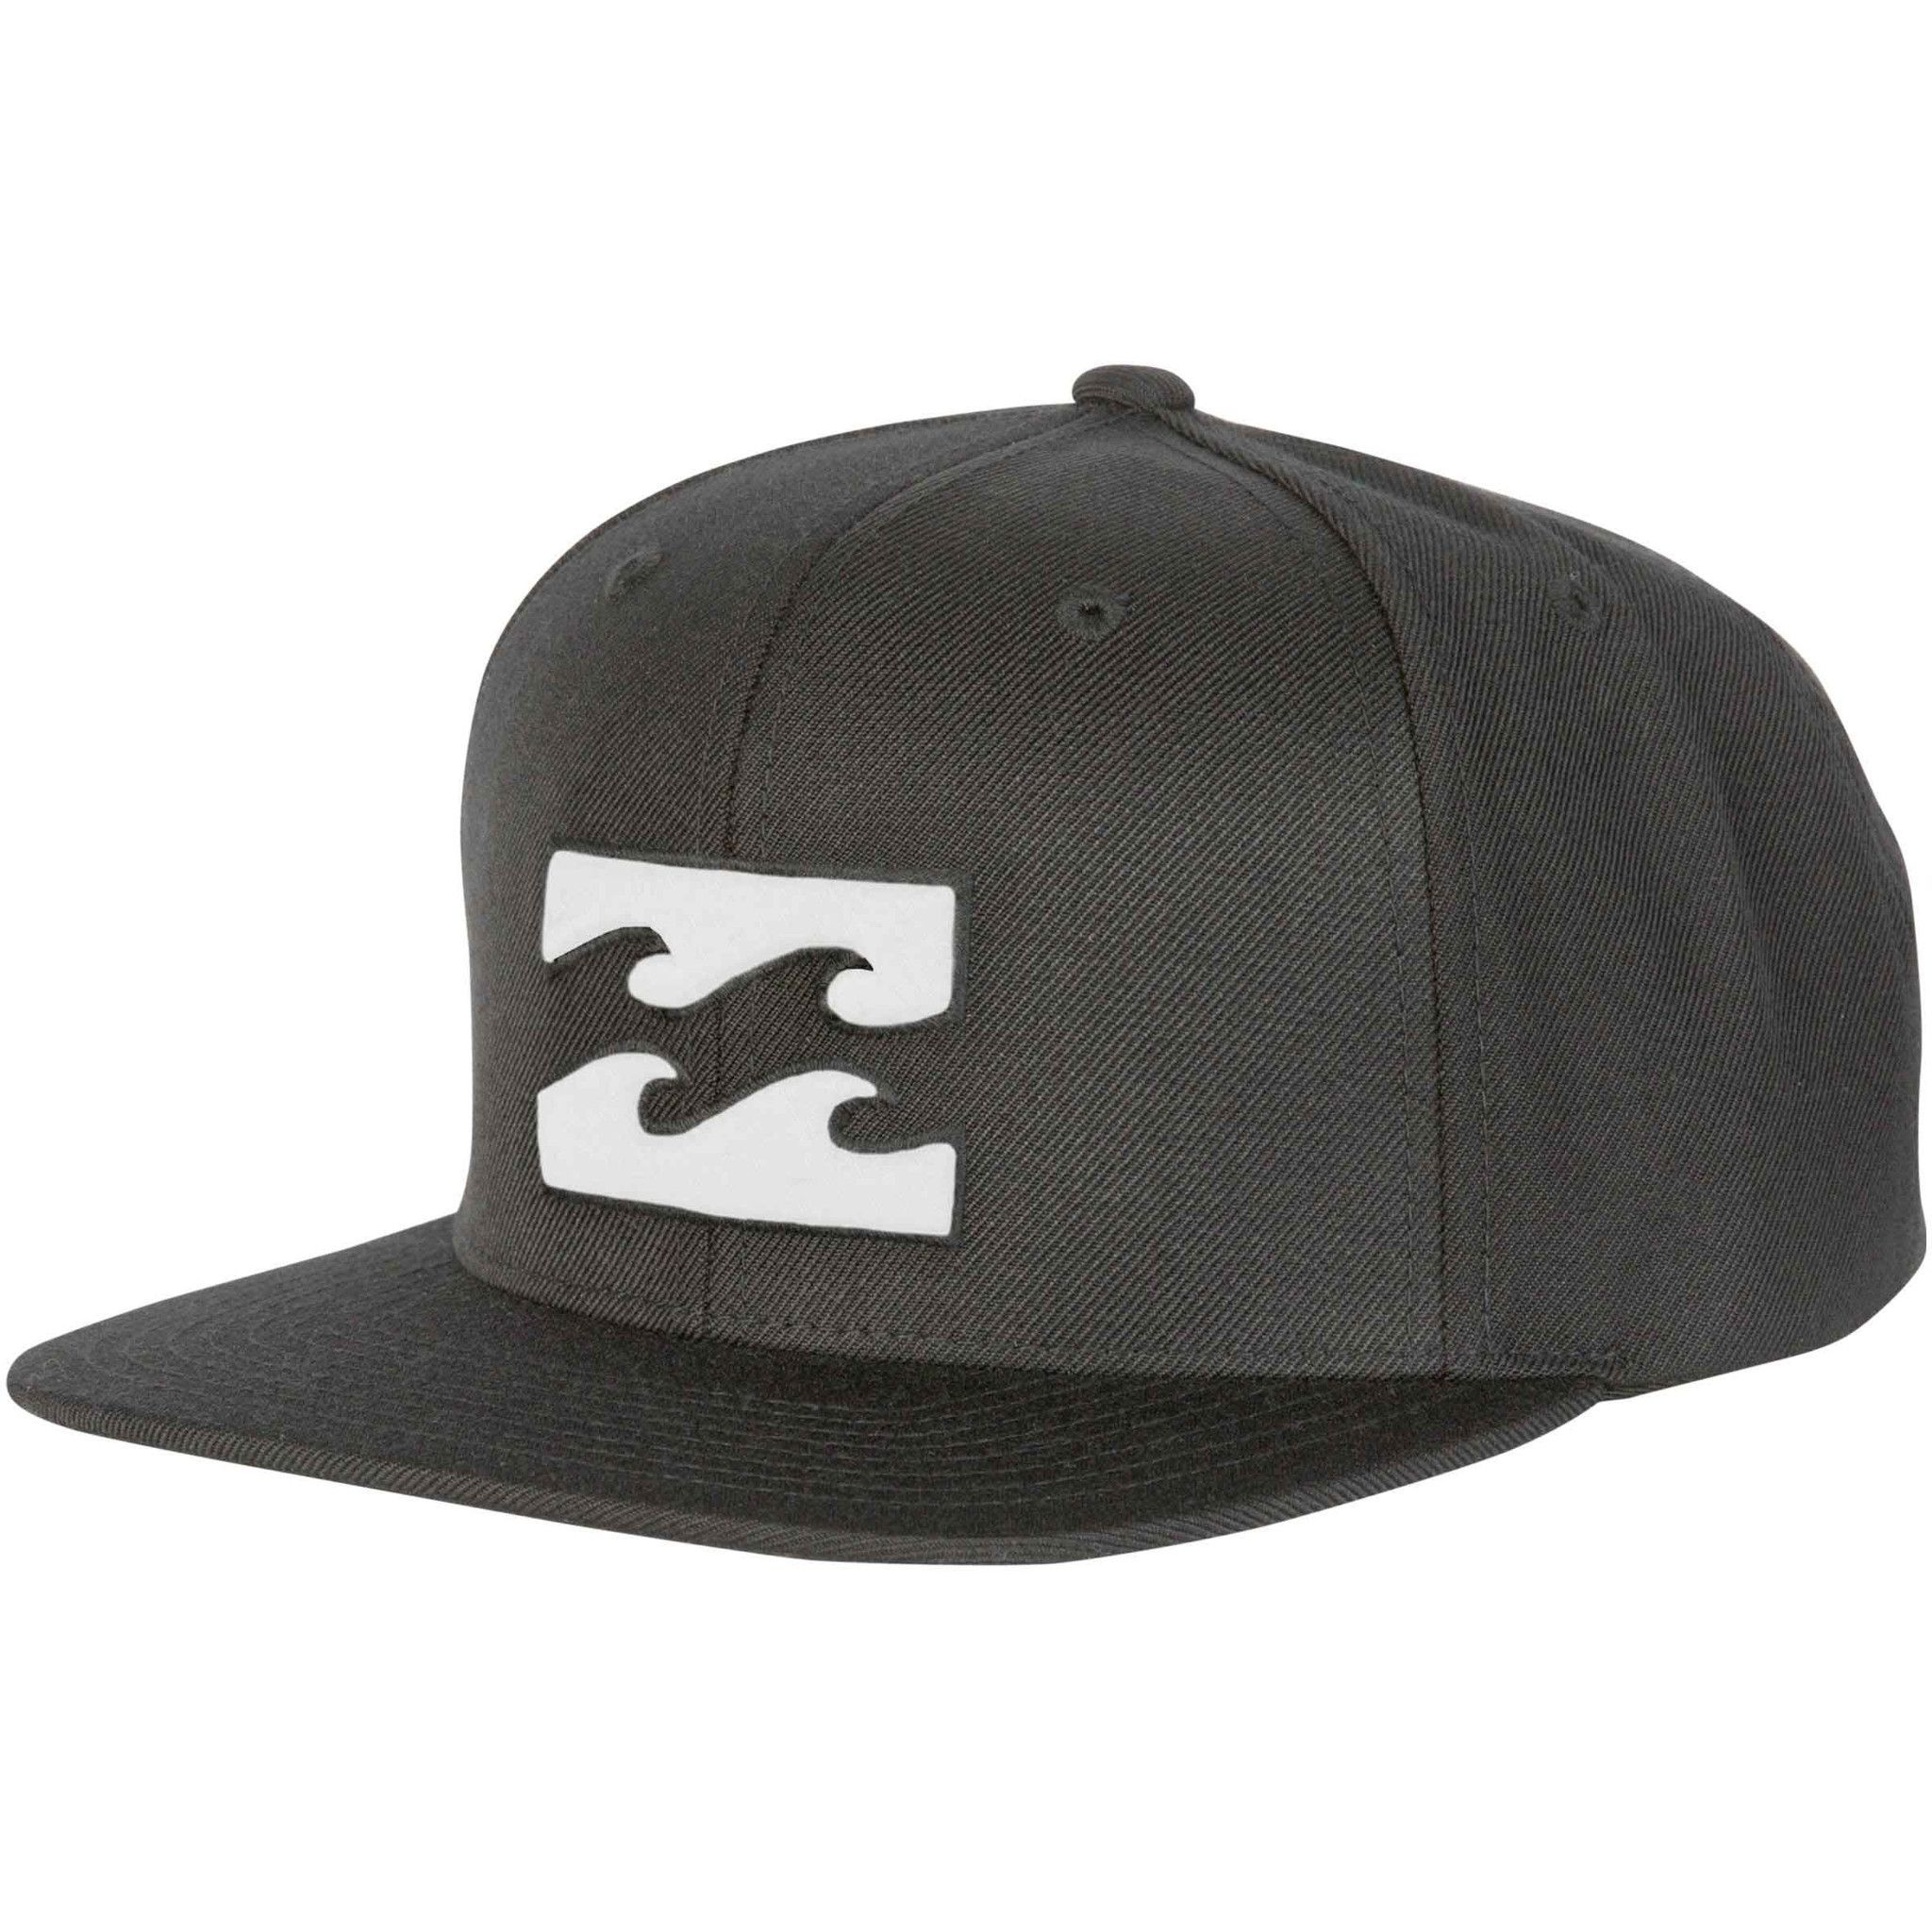 Billabong All Day Snapback  7ae0b0d6f2be